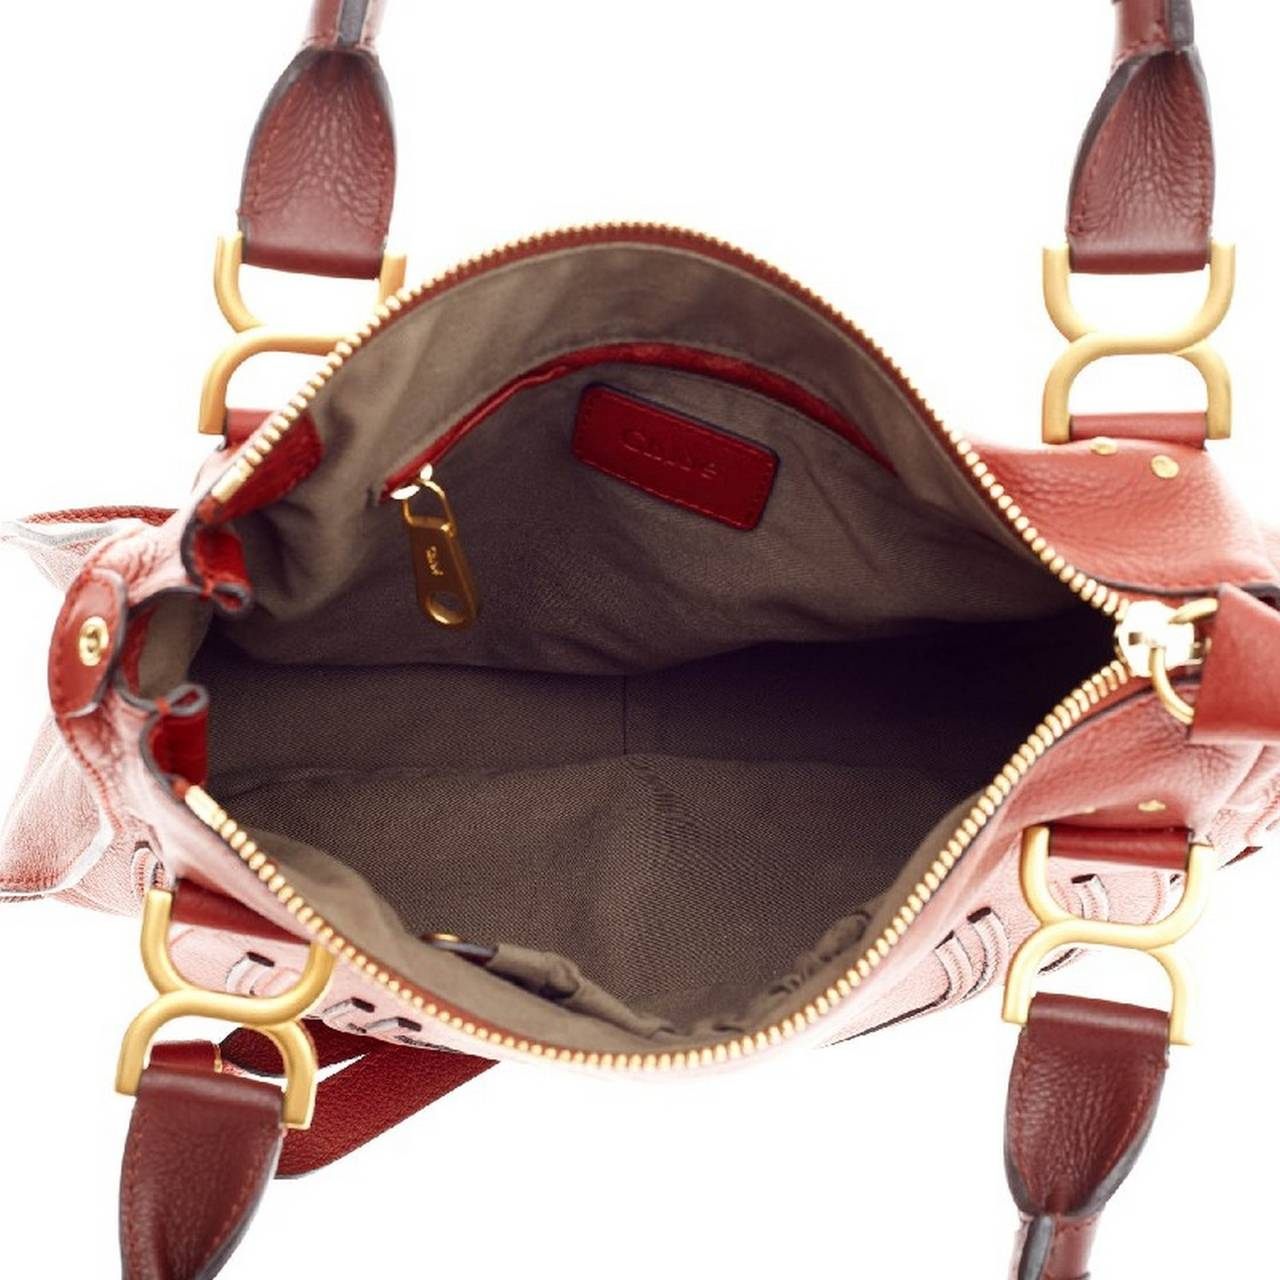 Chloe Marcie Top Handle Bag Leather Small at 1stdibs